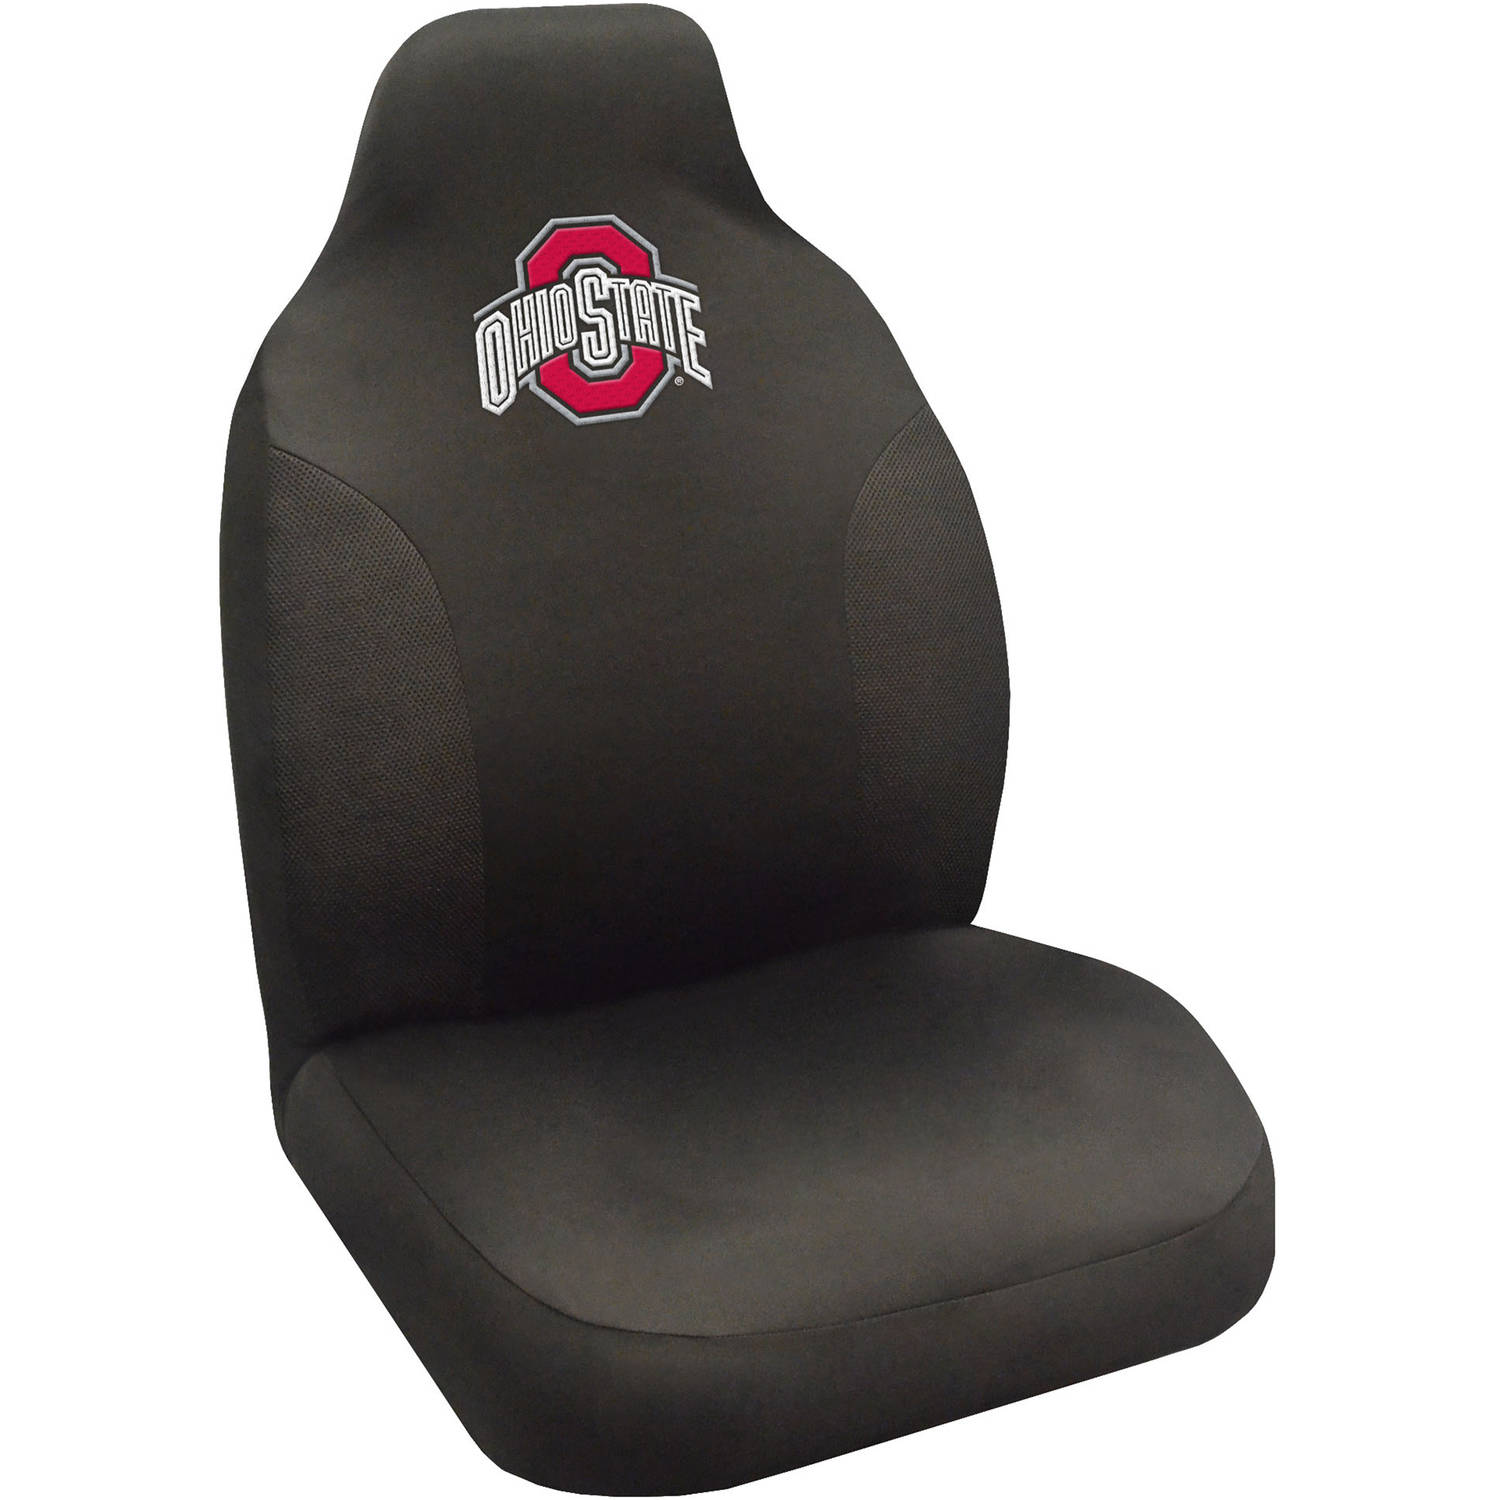 Ohio State University Seat Covers